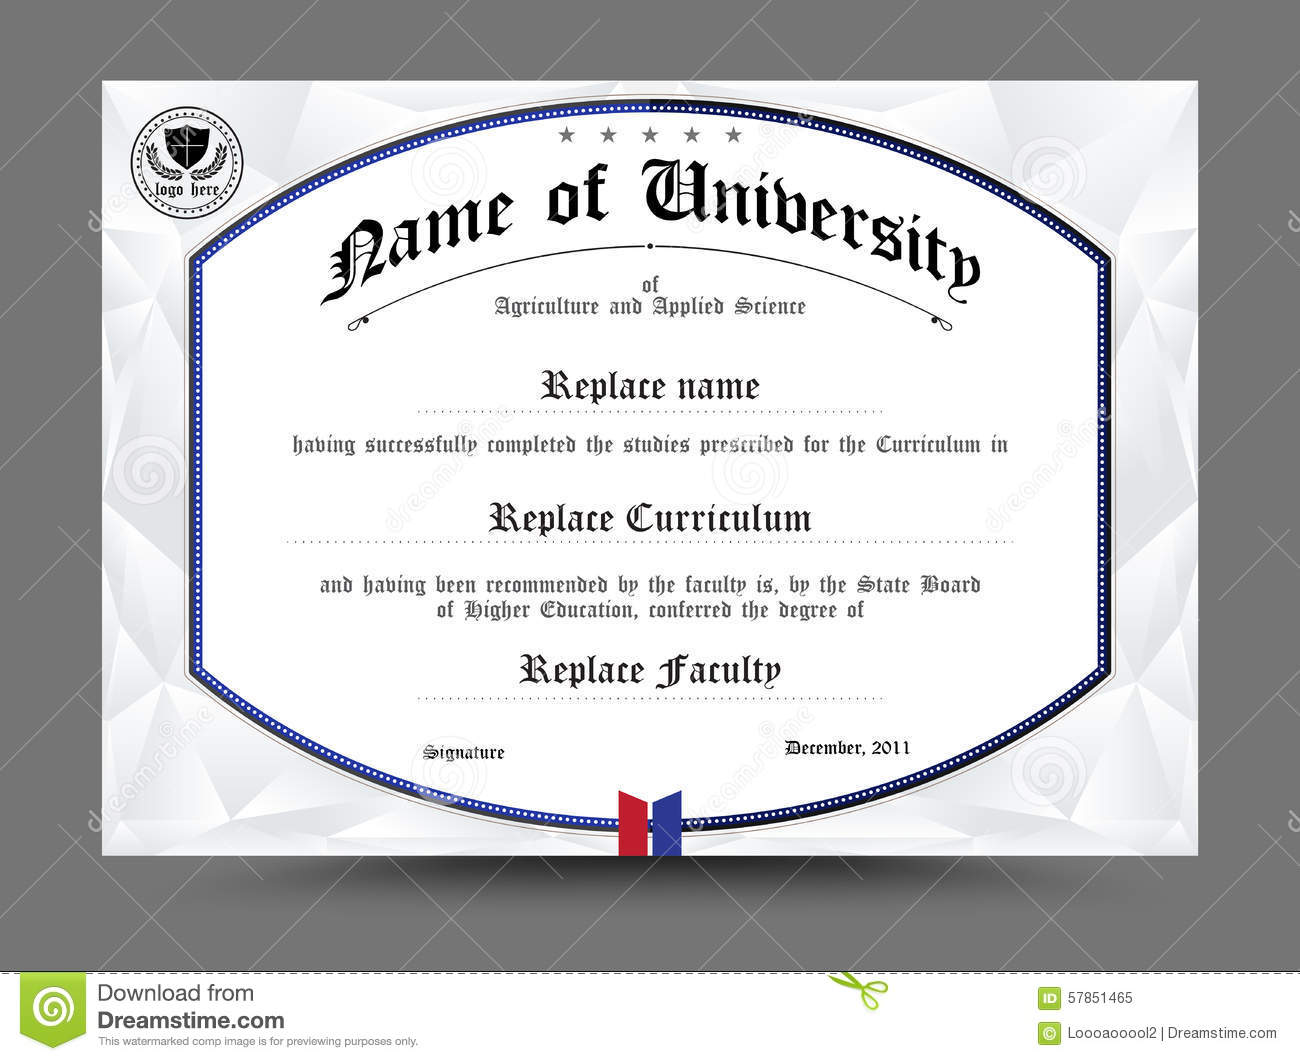 Science certificate template images templates example free download diploma certificate template design vector illustration stock diploma certificate template design vector illustration alramifo images yadclub Images